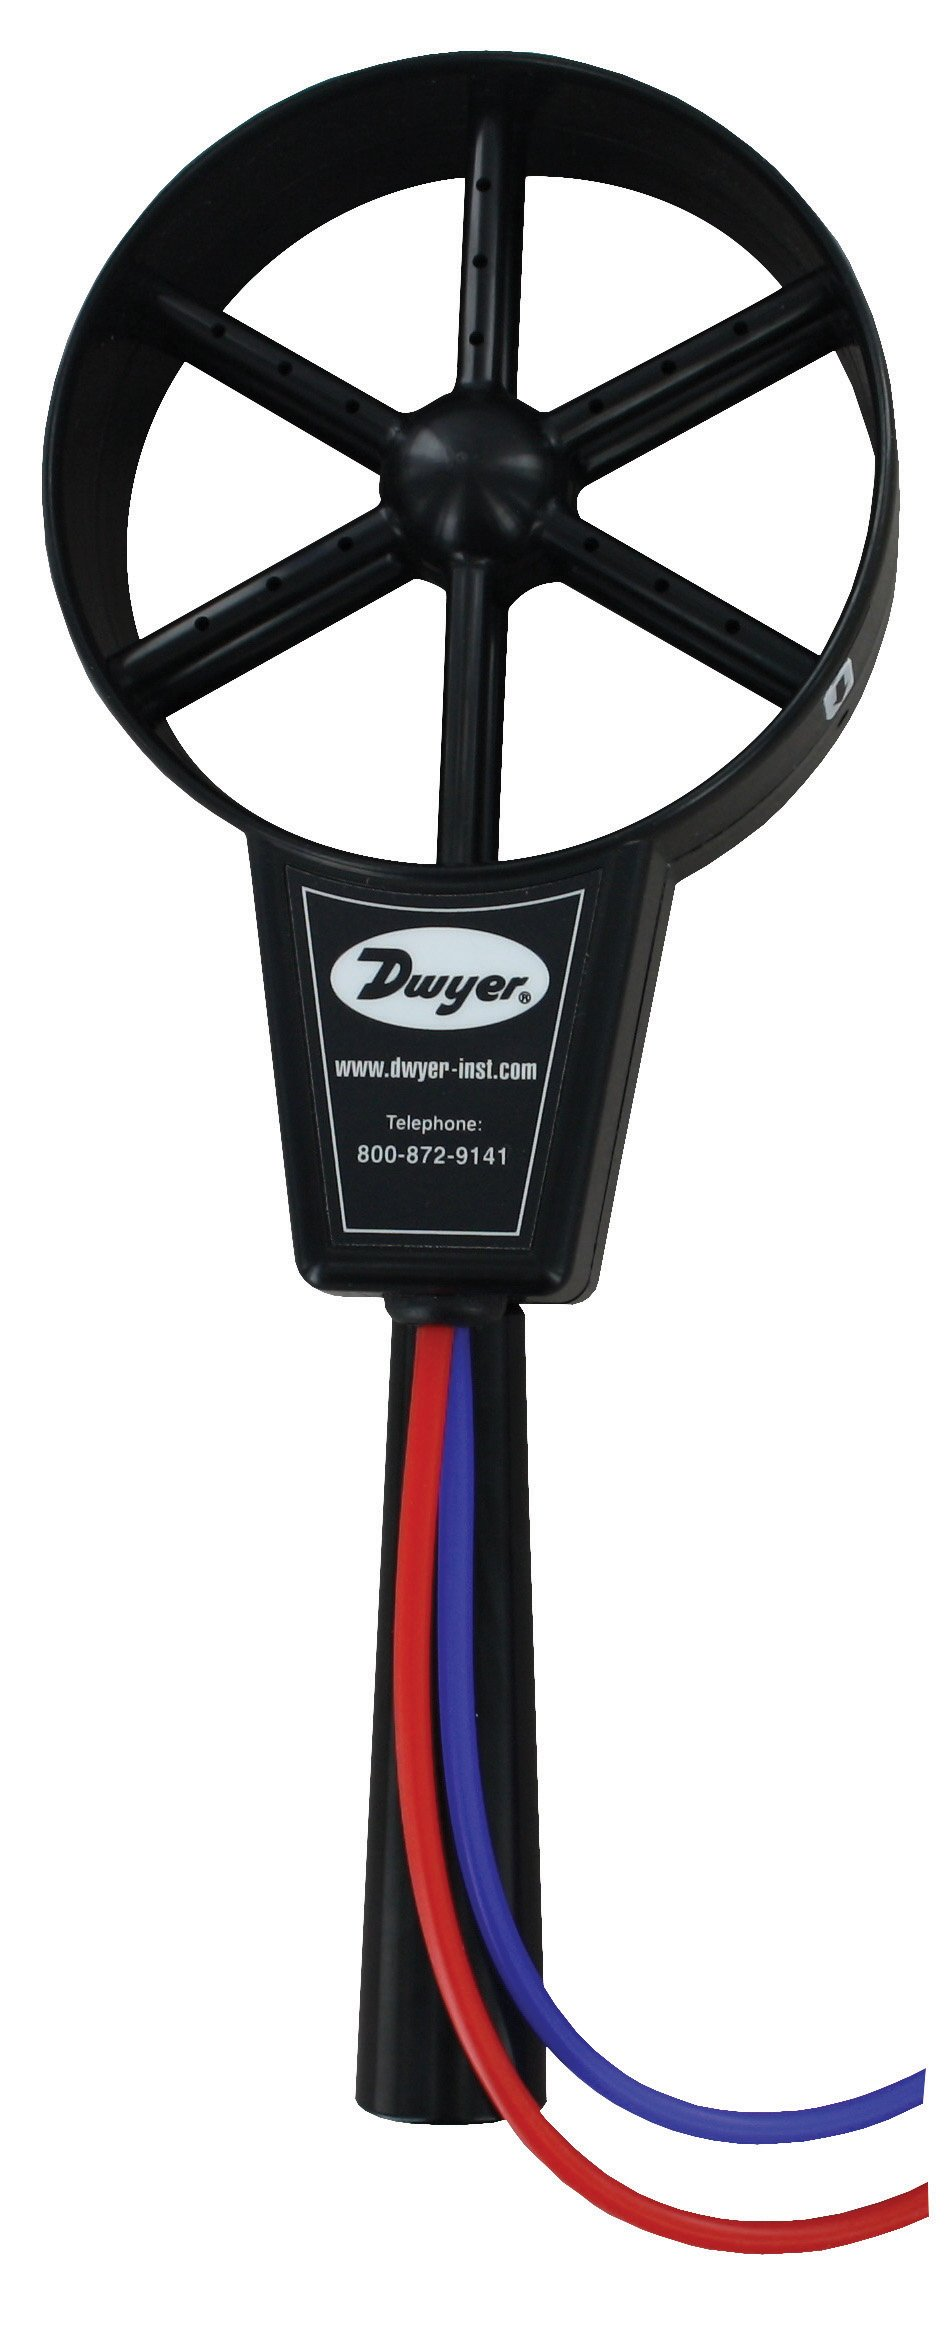 Dwyer ANE-1 Bi-Directional Differential Pressure Anemometer. No Moving Parts or Sensing Electronics. Connects to Any Manometer or Pressure Sensor. Wide Velocity Range. Silicone tubing included.